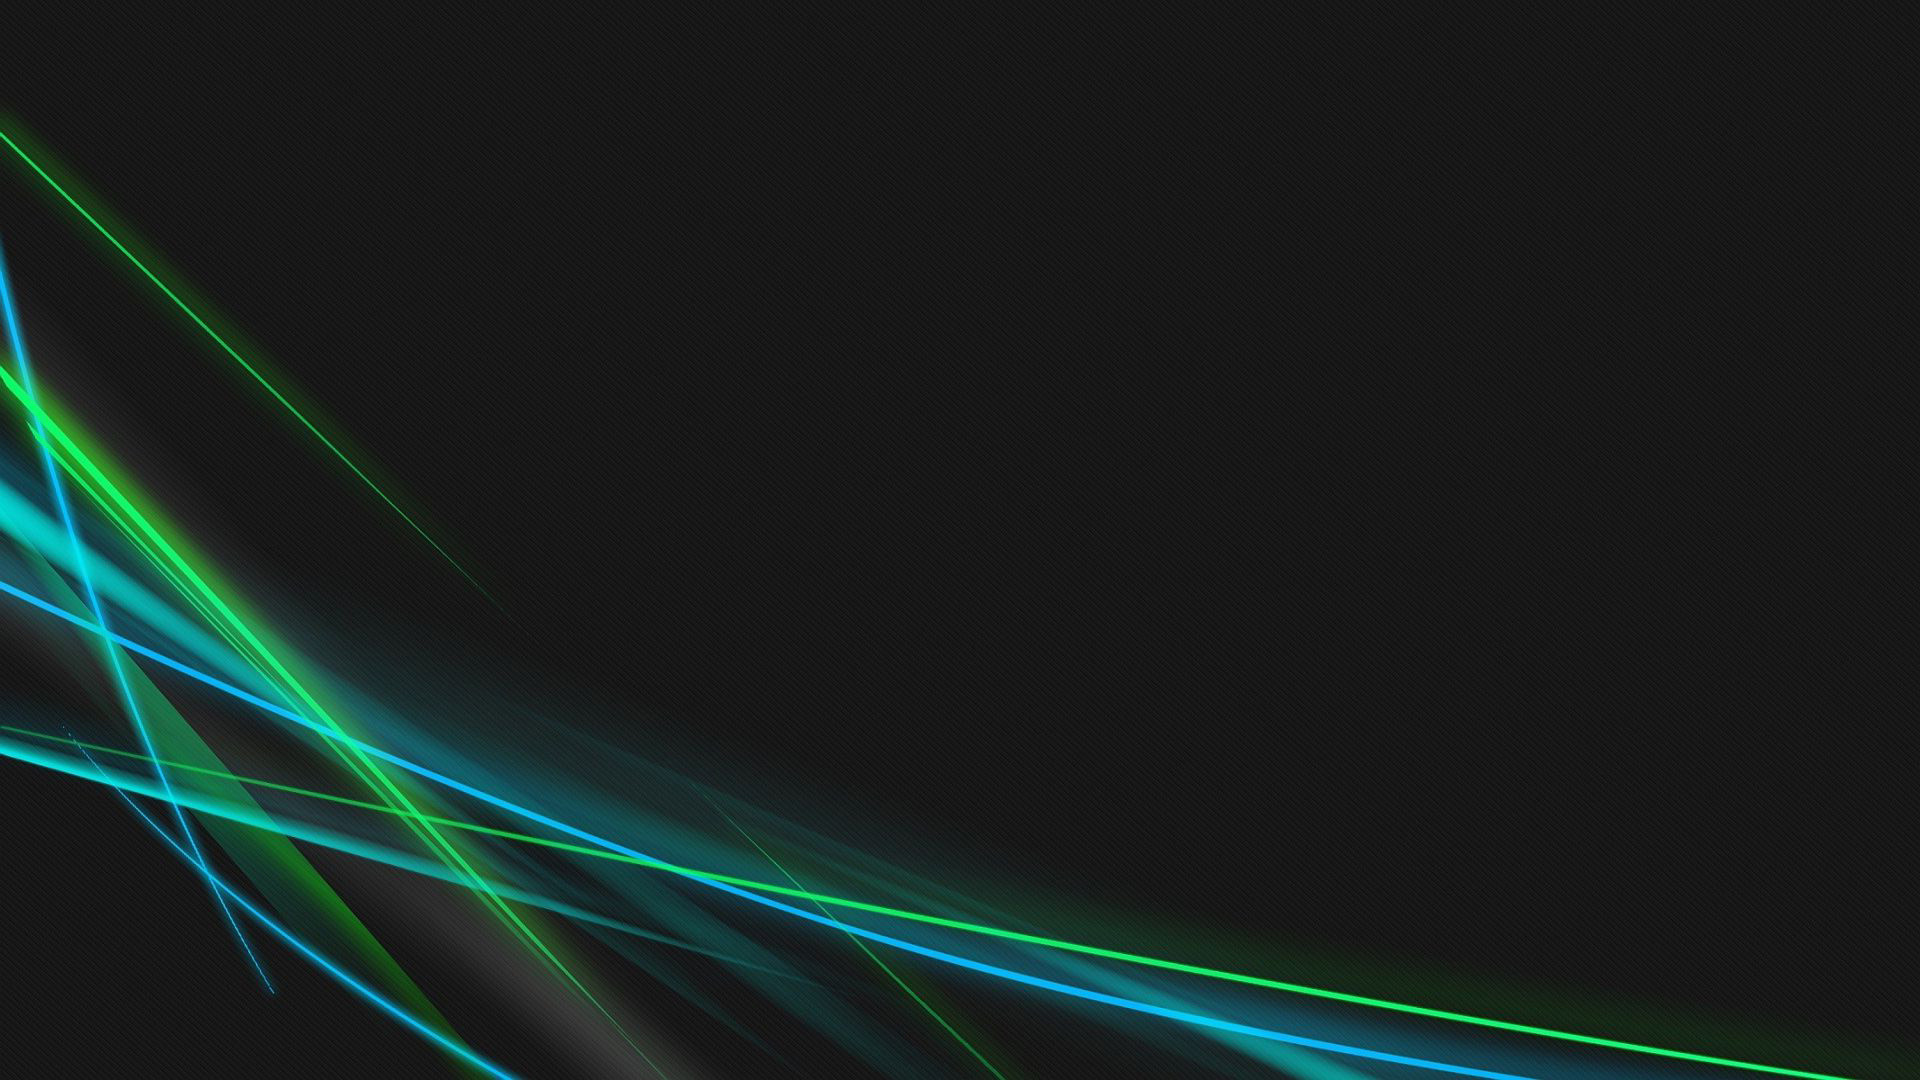 Cool Neon Cars Wallpapers Blue And Neon Green Wallpaper 62 Images